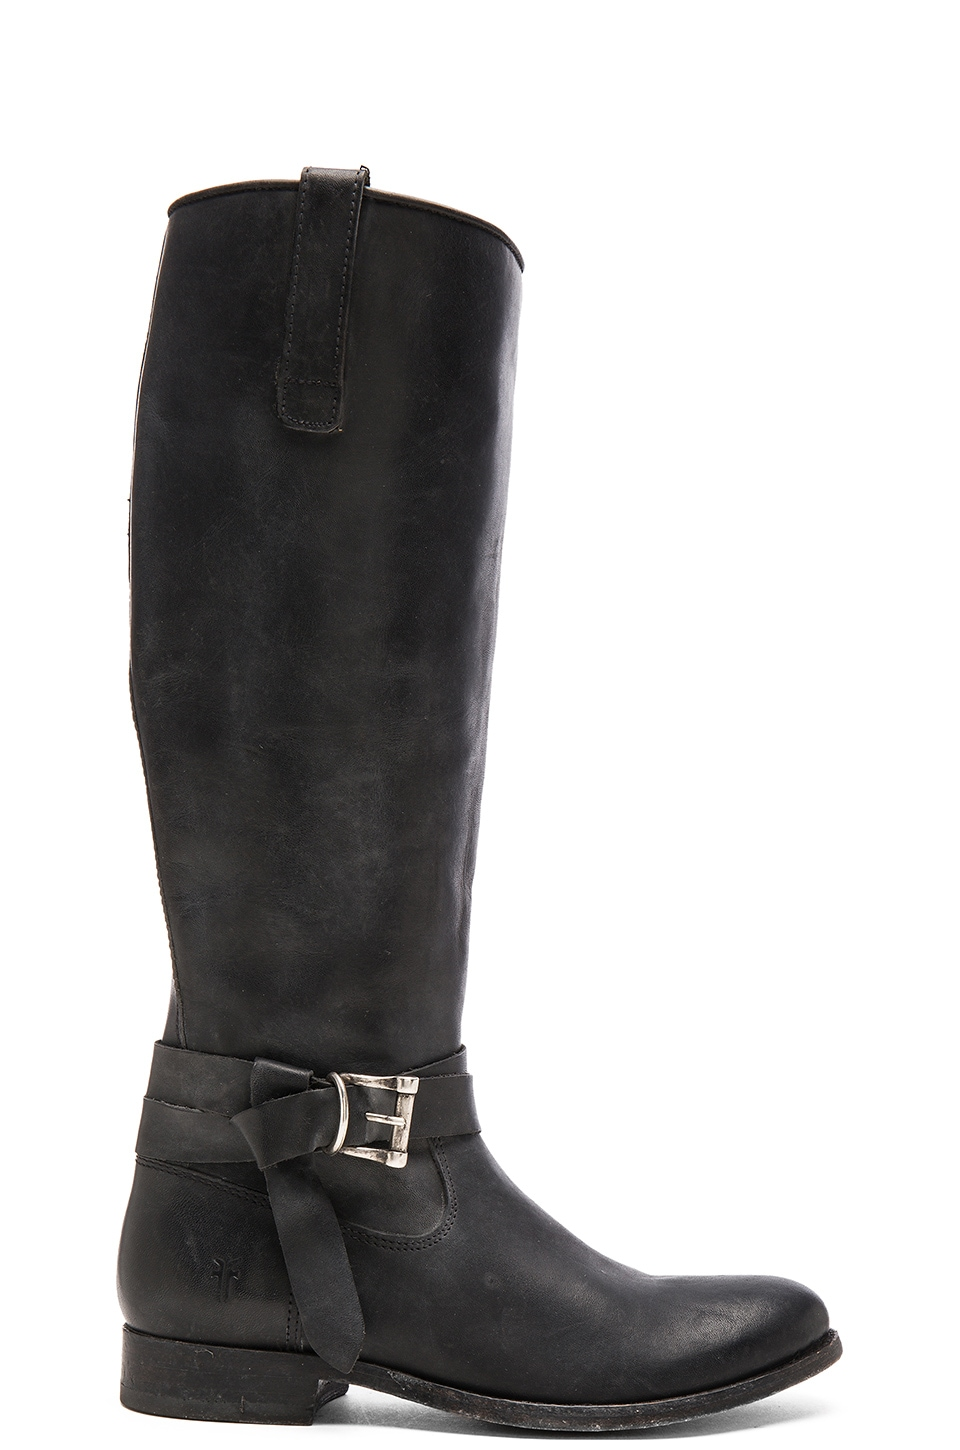 Frye Melissa Knotted Tall Boot in Black